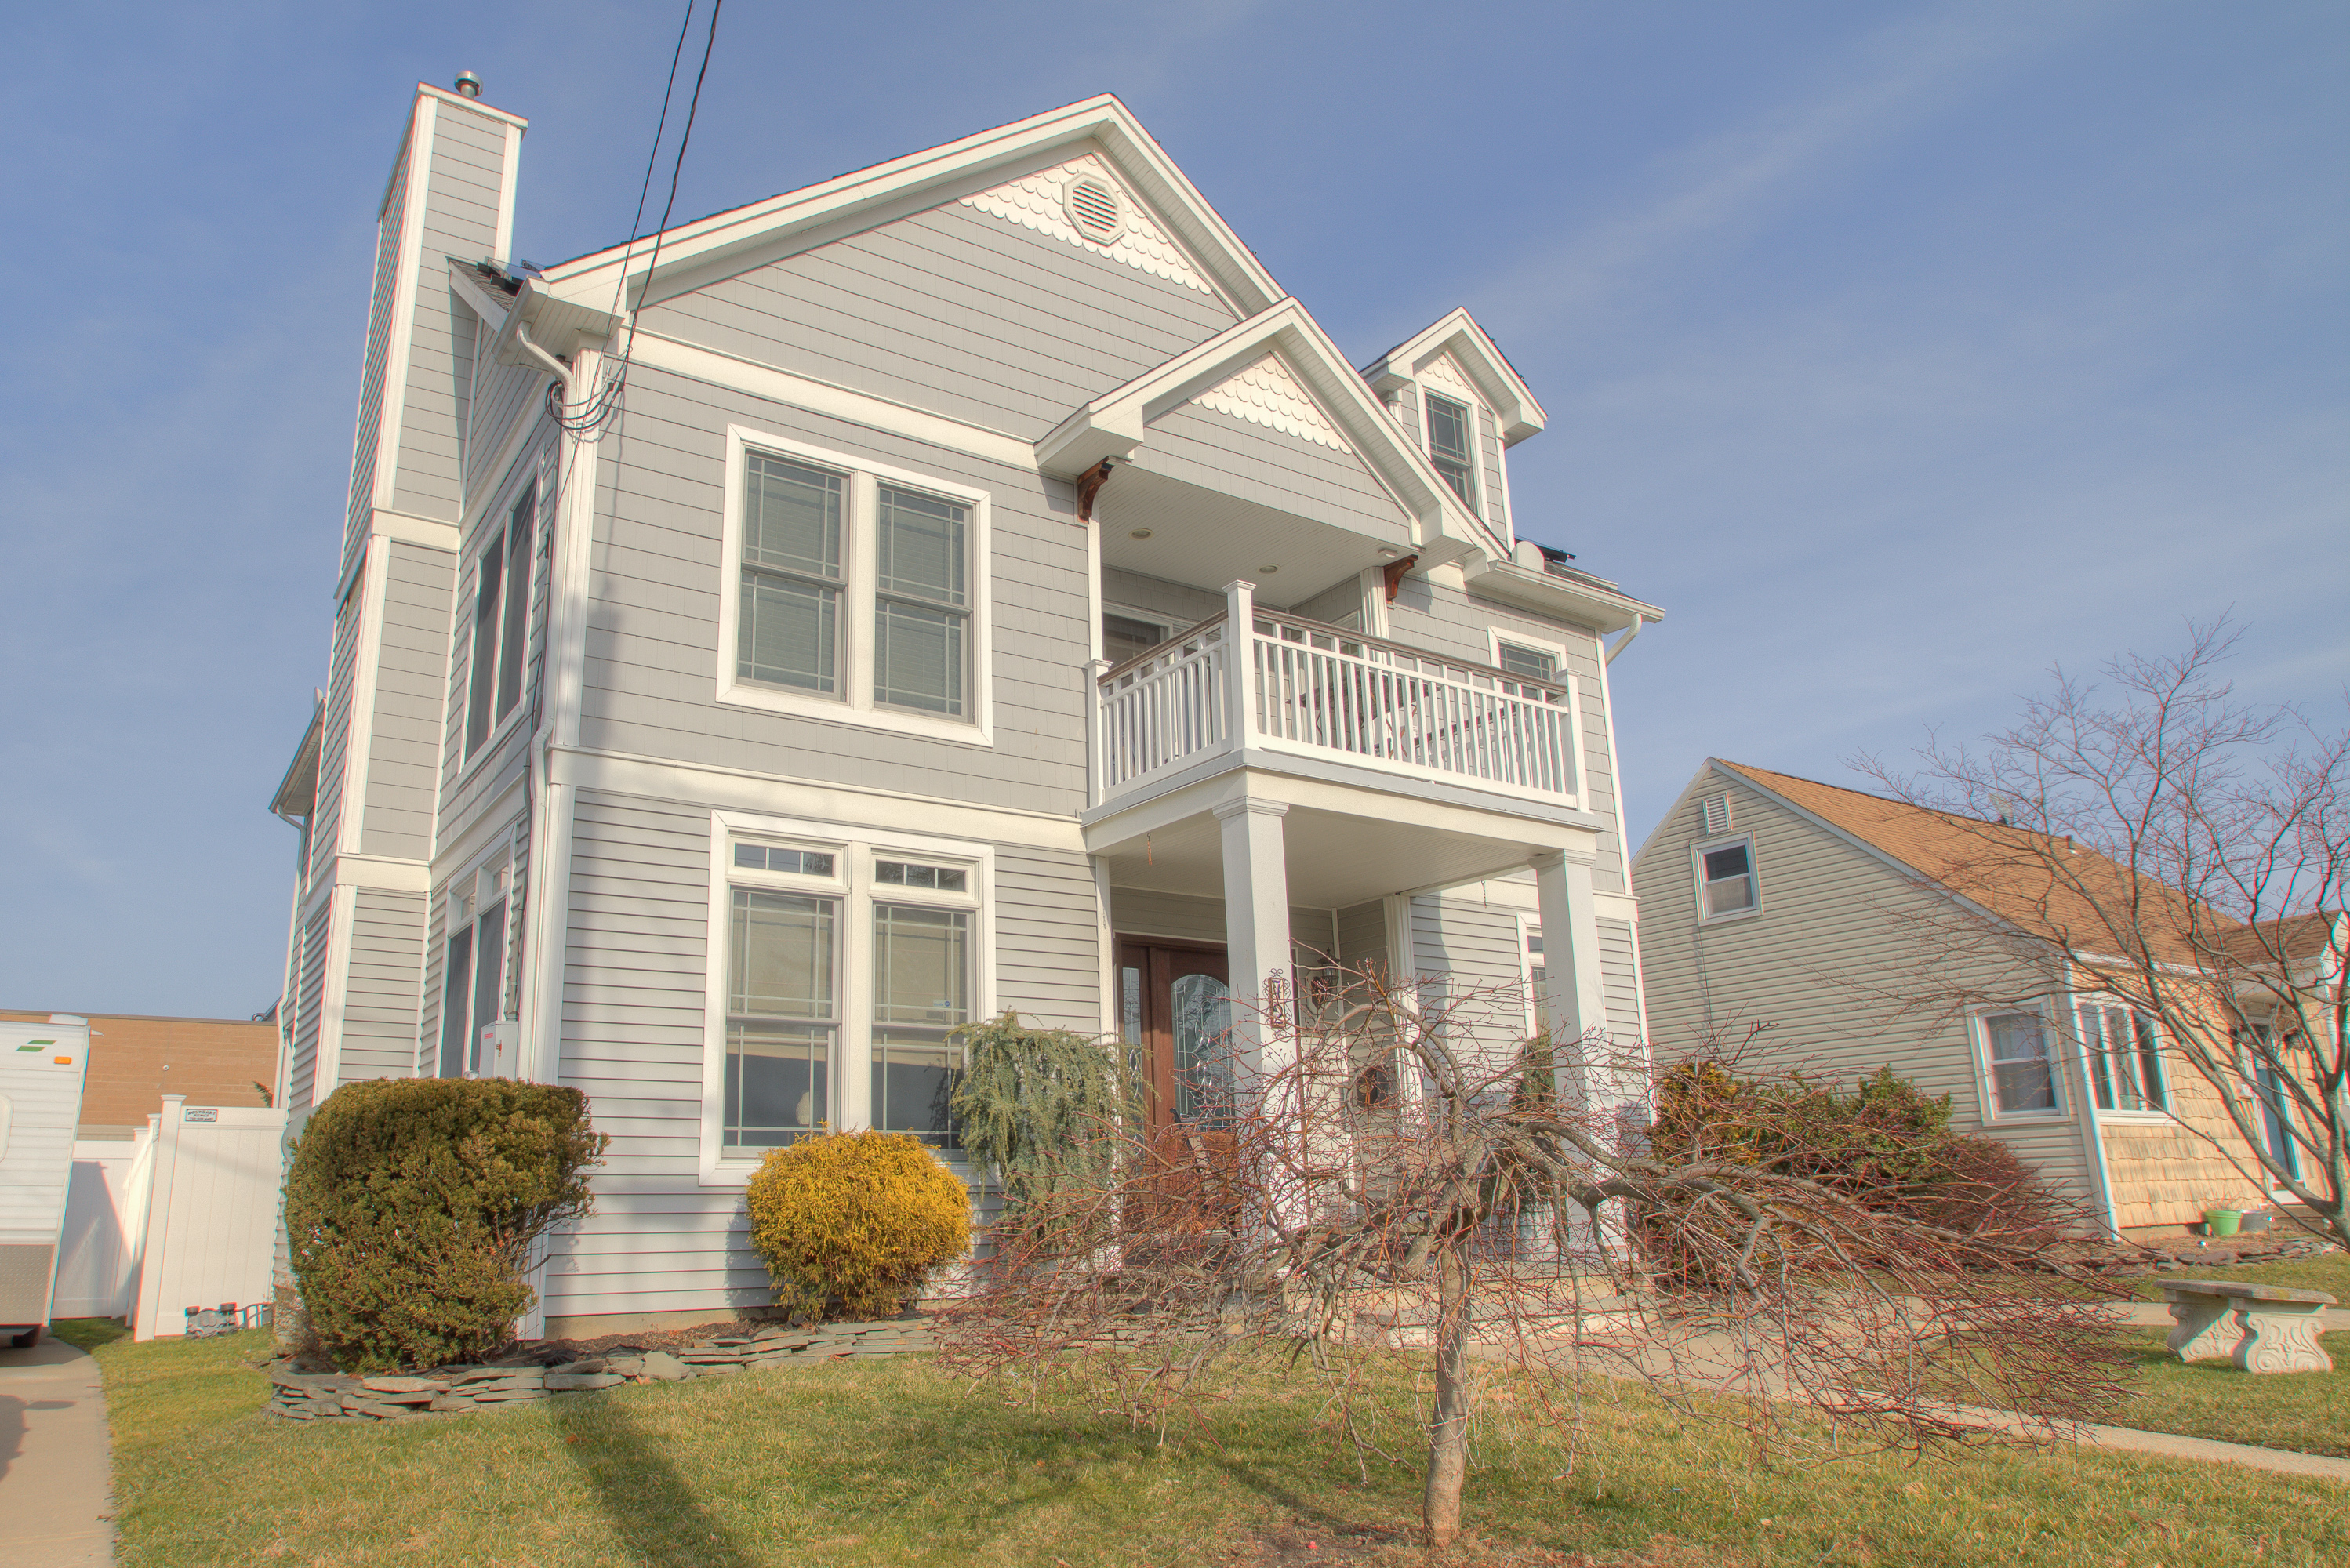 Single Family Home for Sale at Sunny Seashore Colonial 72 Lincoln Ave Neptune City, New Jersey 07753 United States